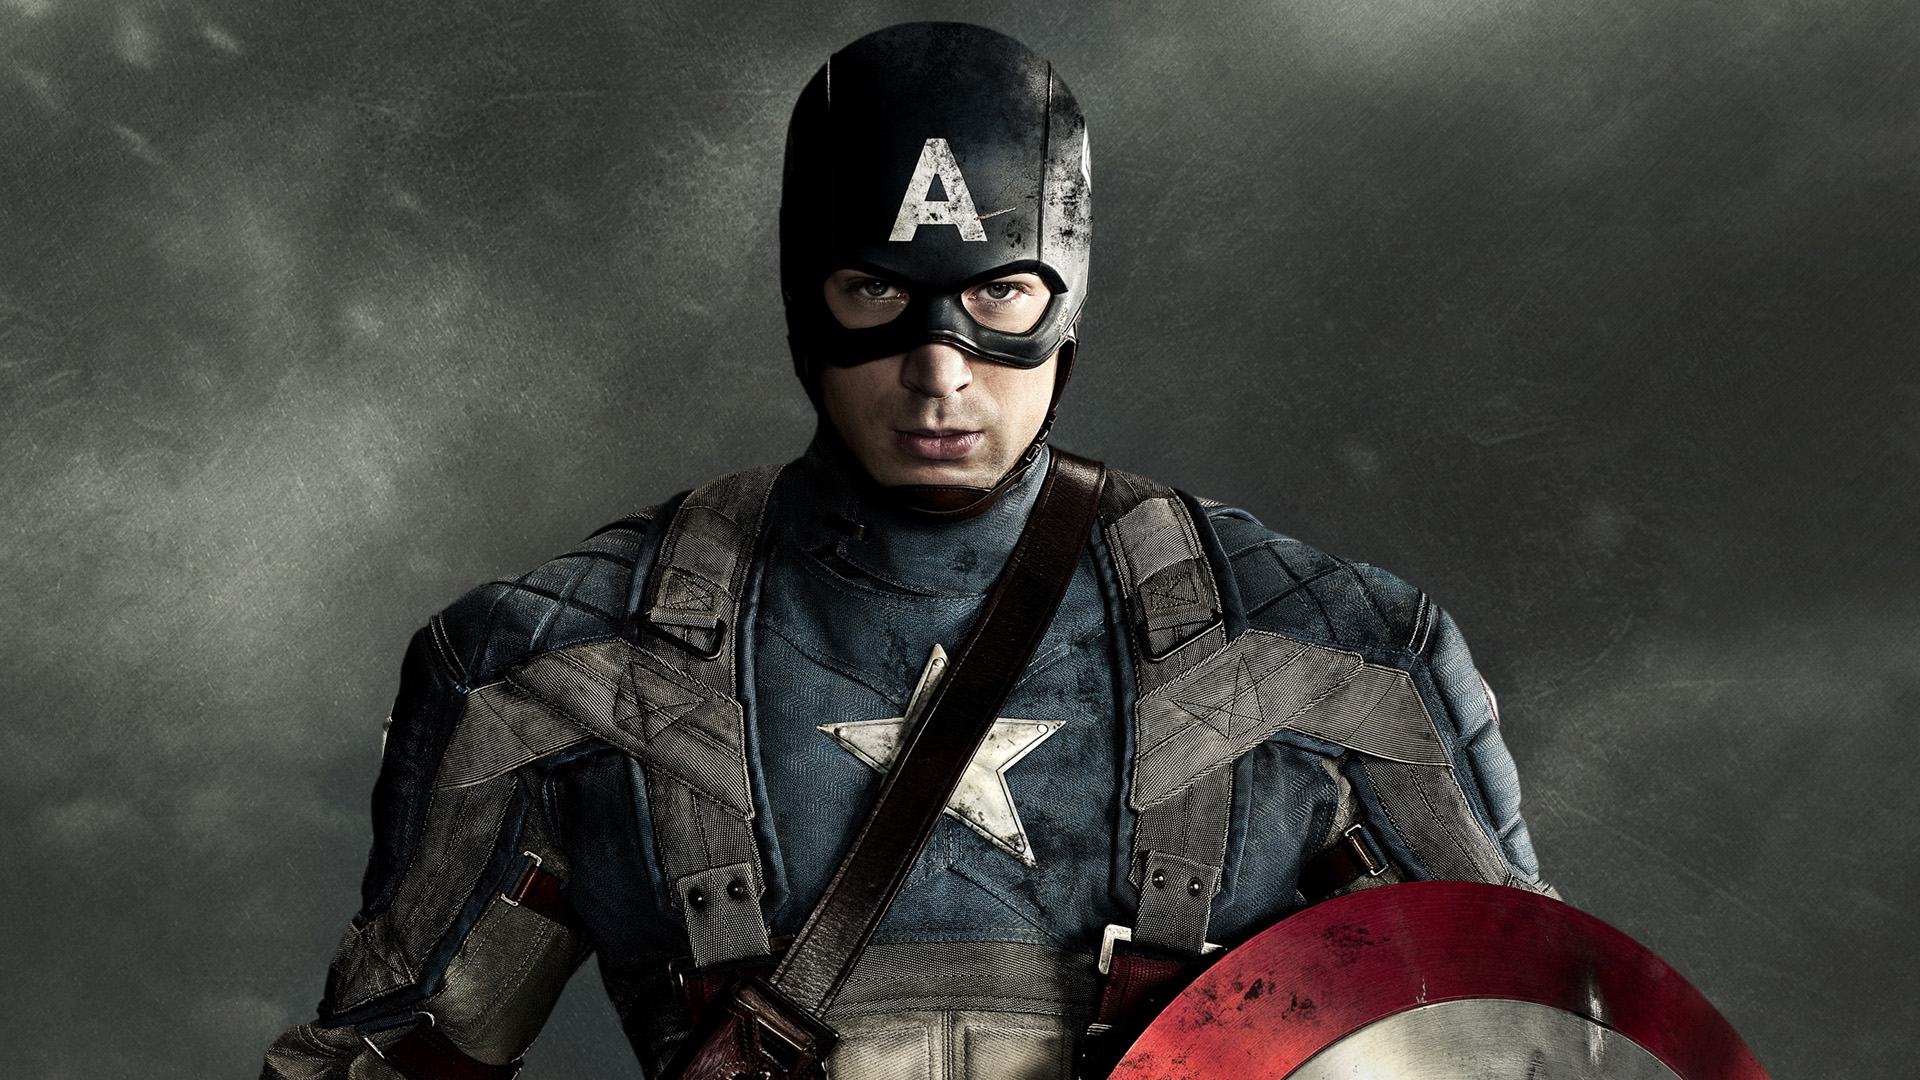 Captain America Wallpapers & Movie Details